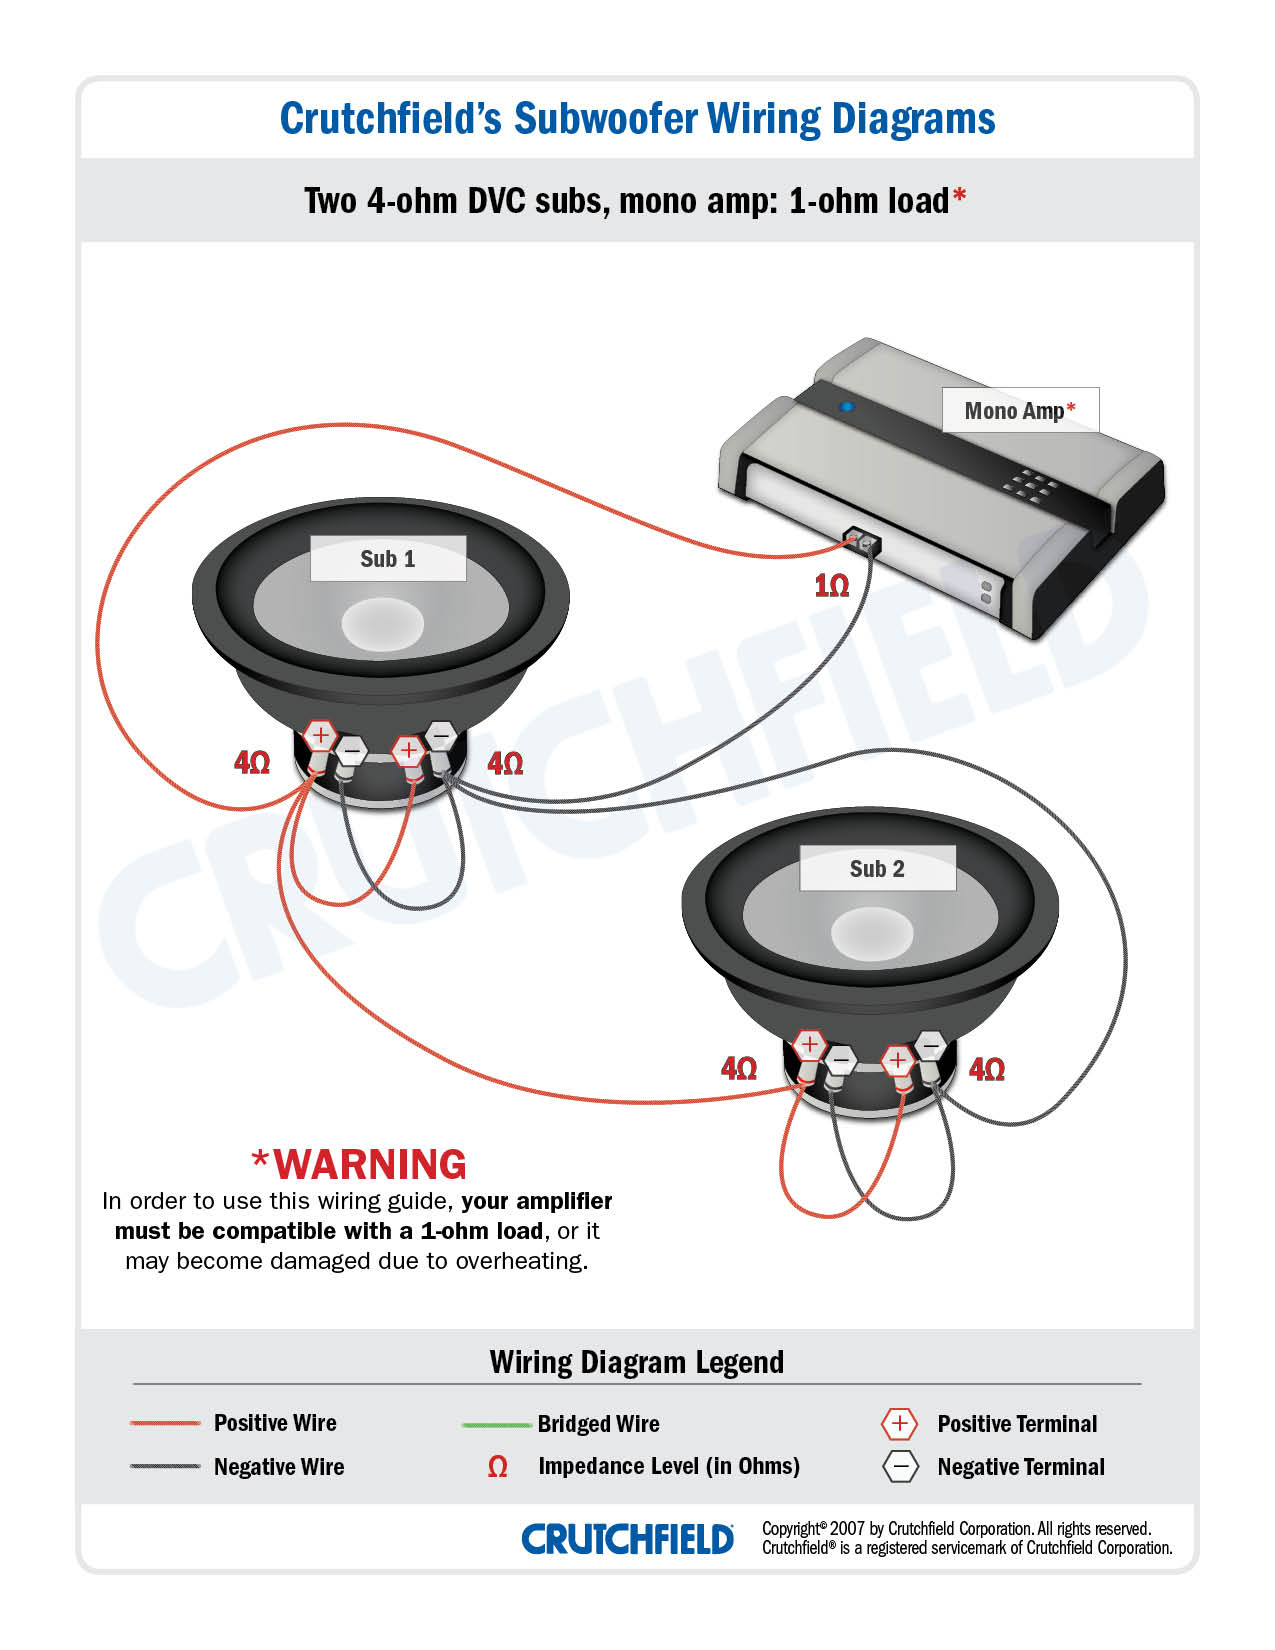 Amplifier Wiring Diagrams: How To Add An Amplifier To Your Car Audio - Amp Wiring Diagram